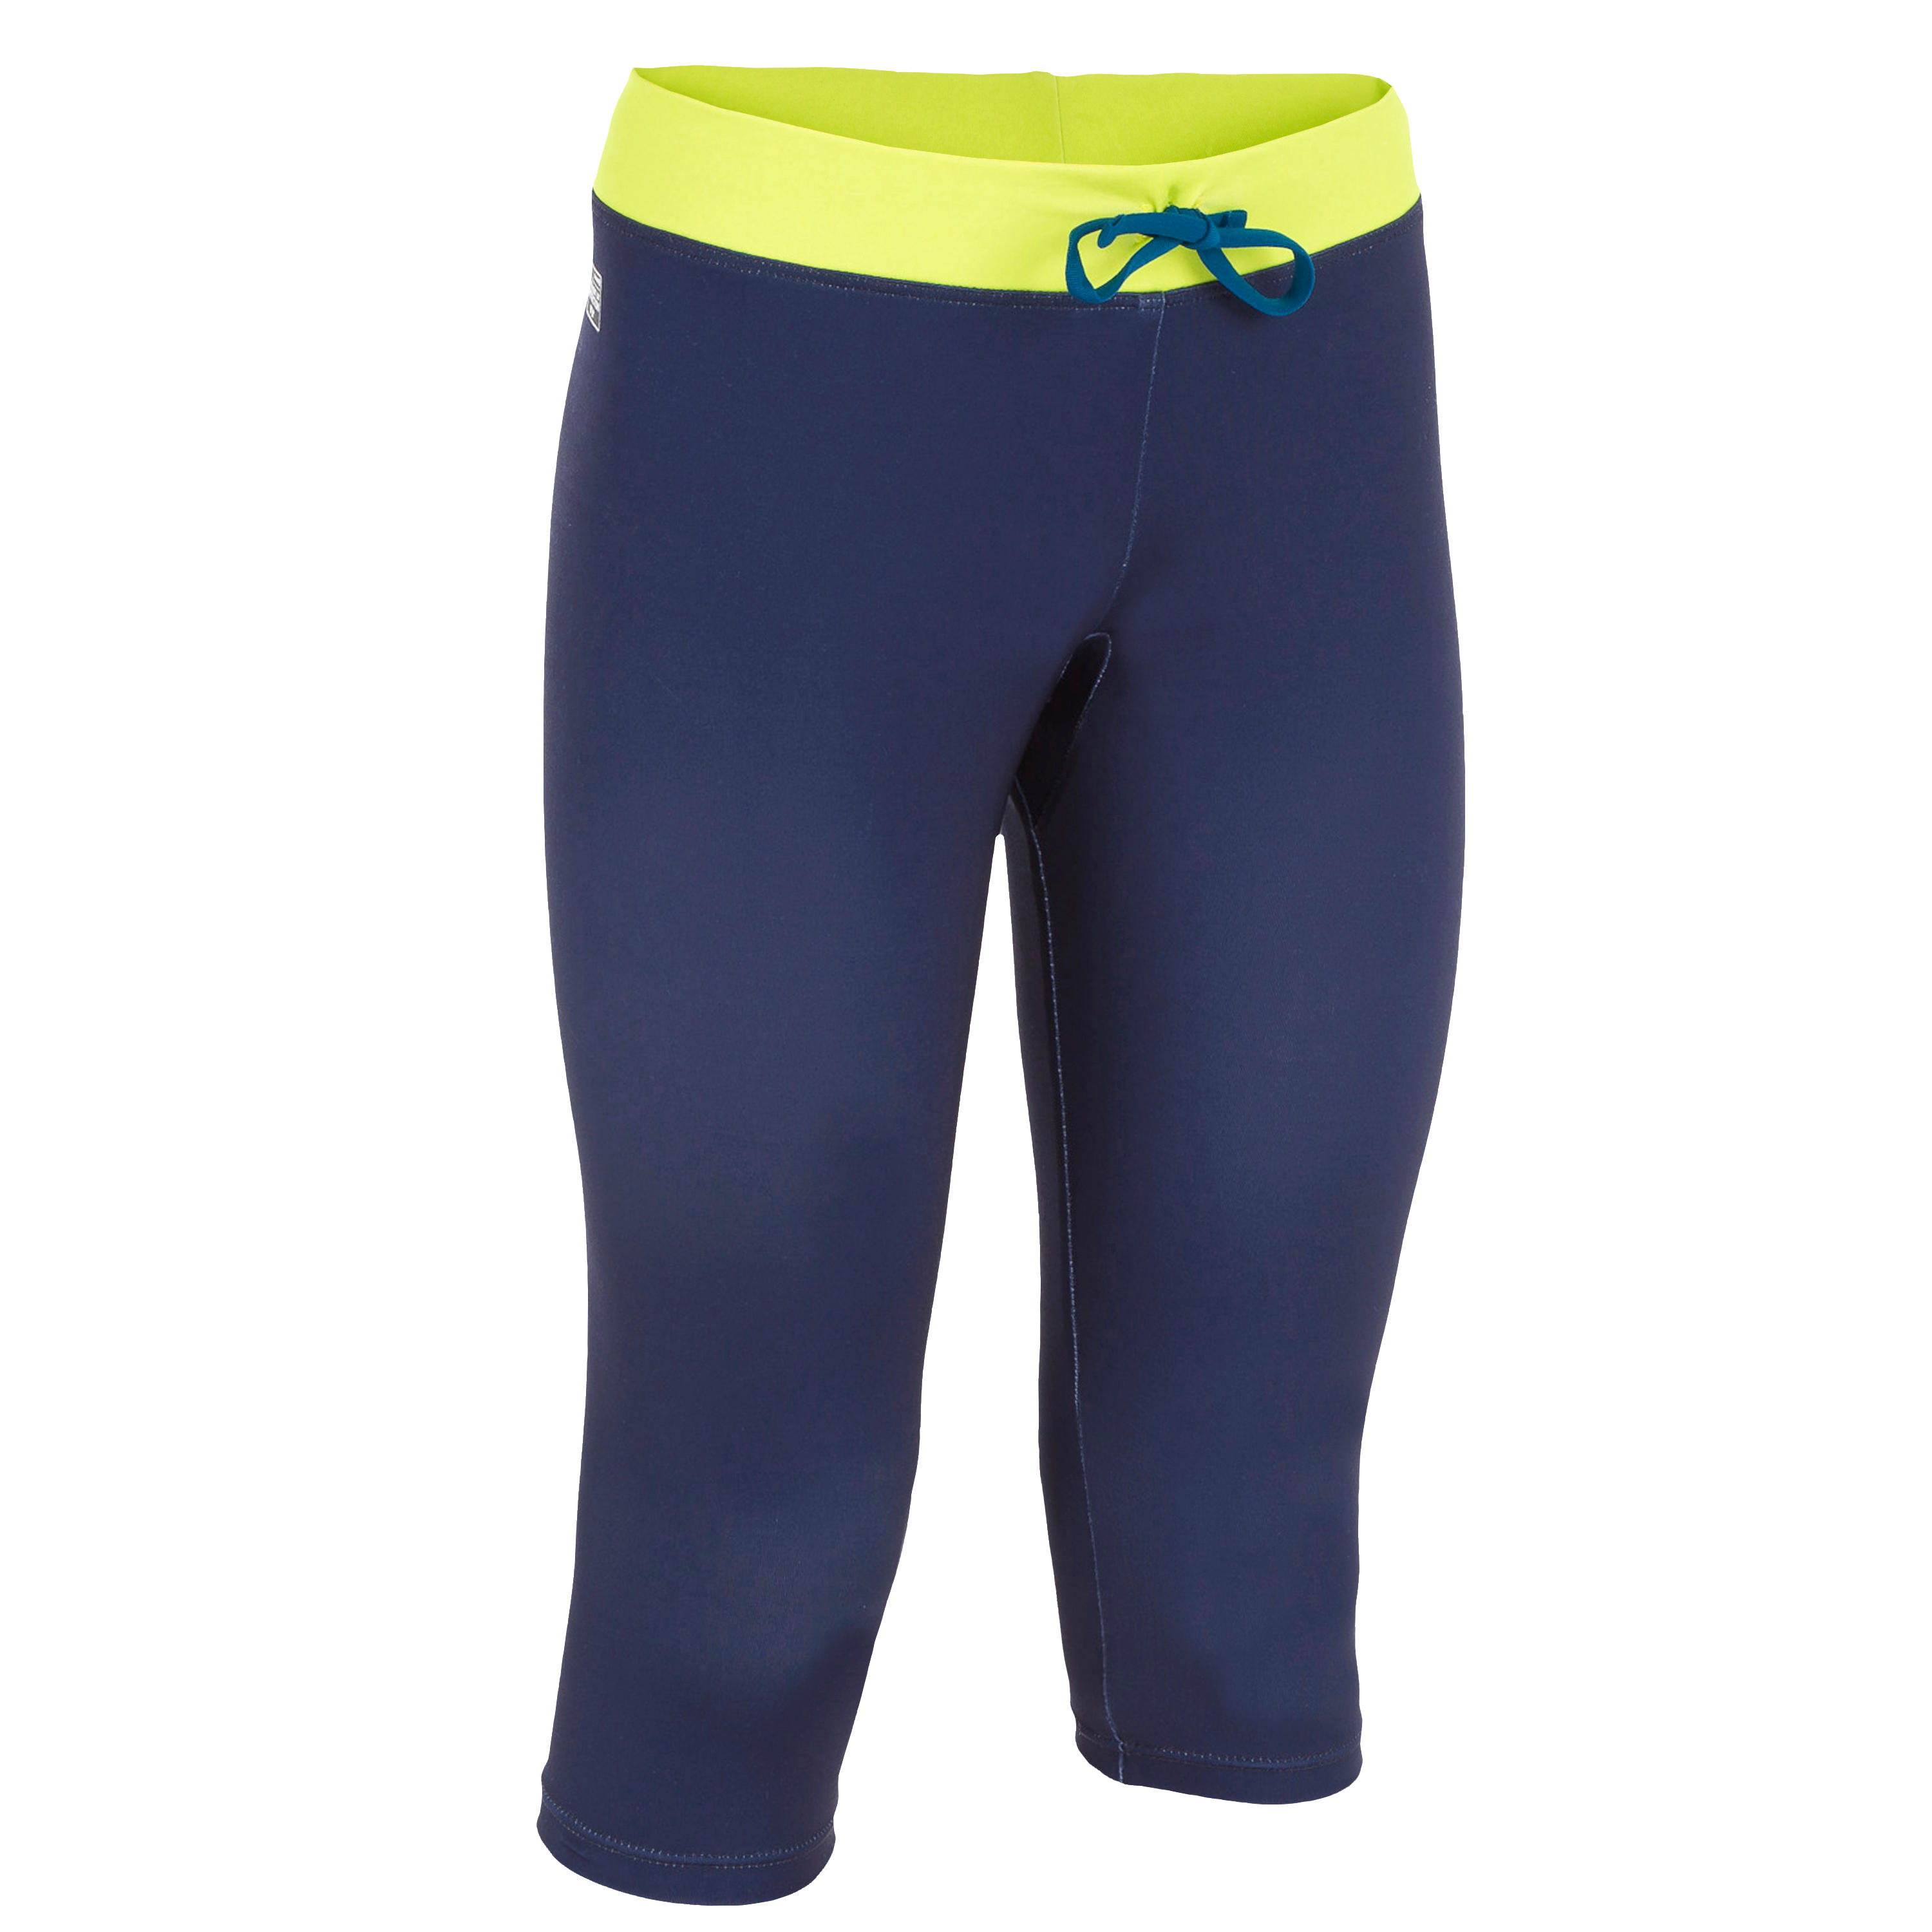 500 child's anti-UV surfing cropped trousers - Navy blue